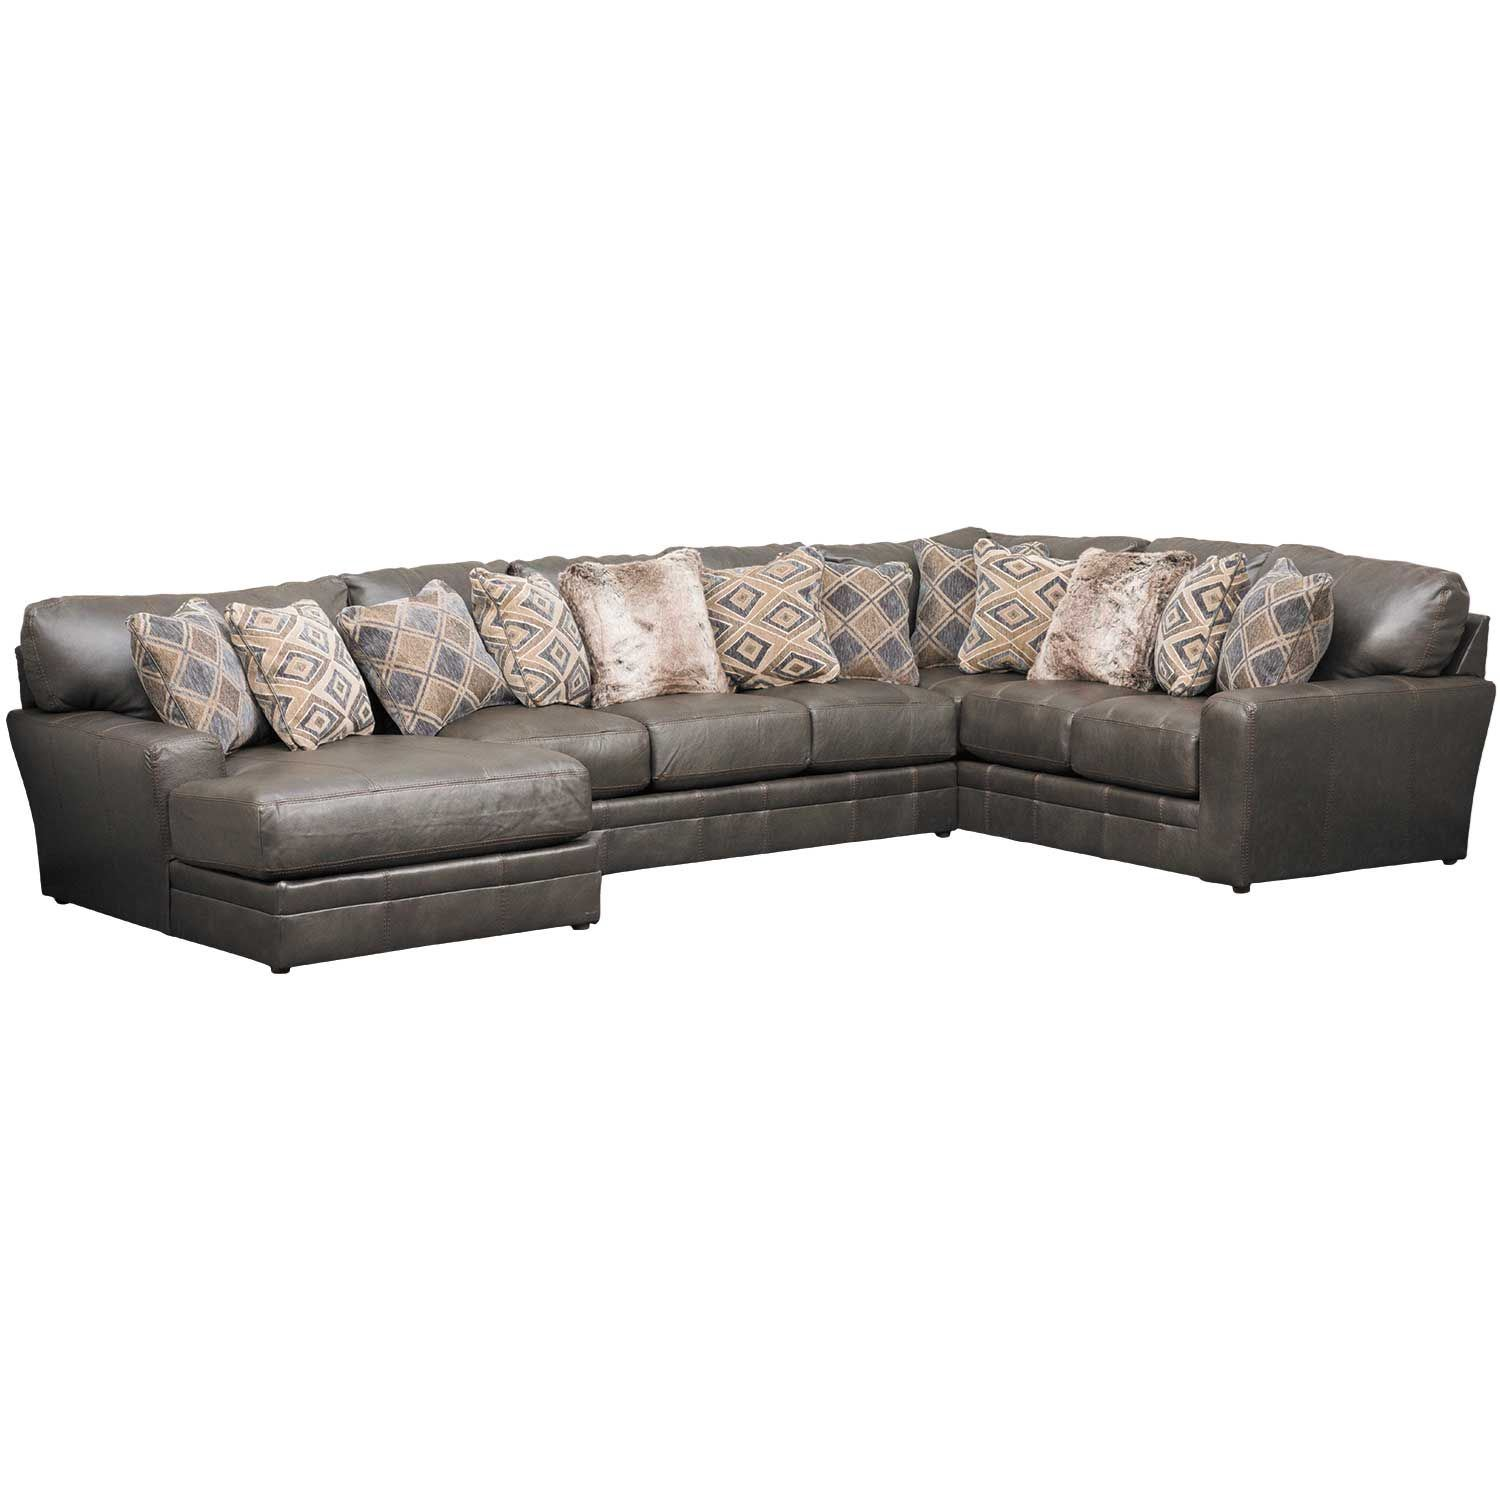 Denali 3 Piece Italian Leather Sectional with LAF Chaise